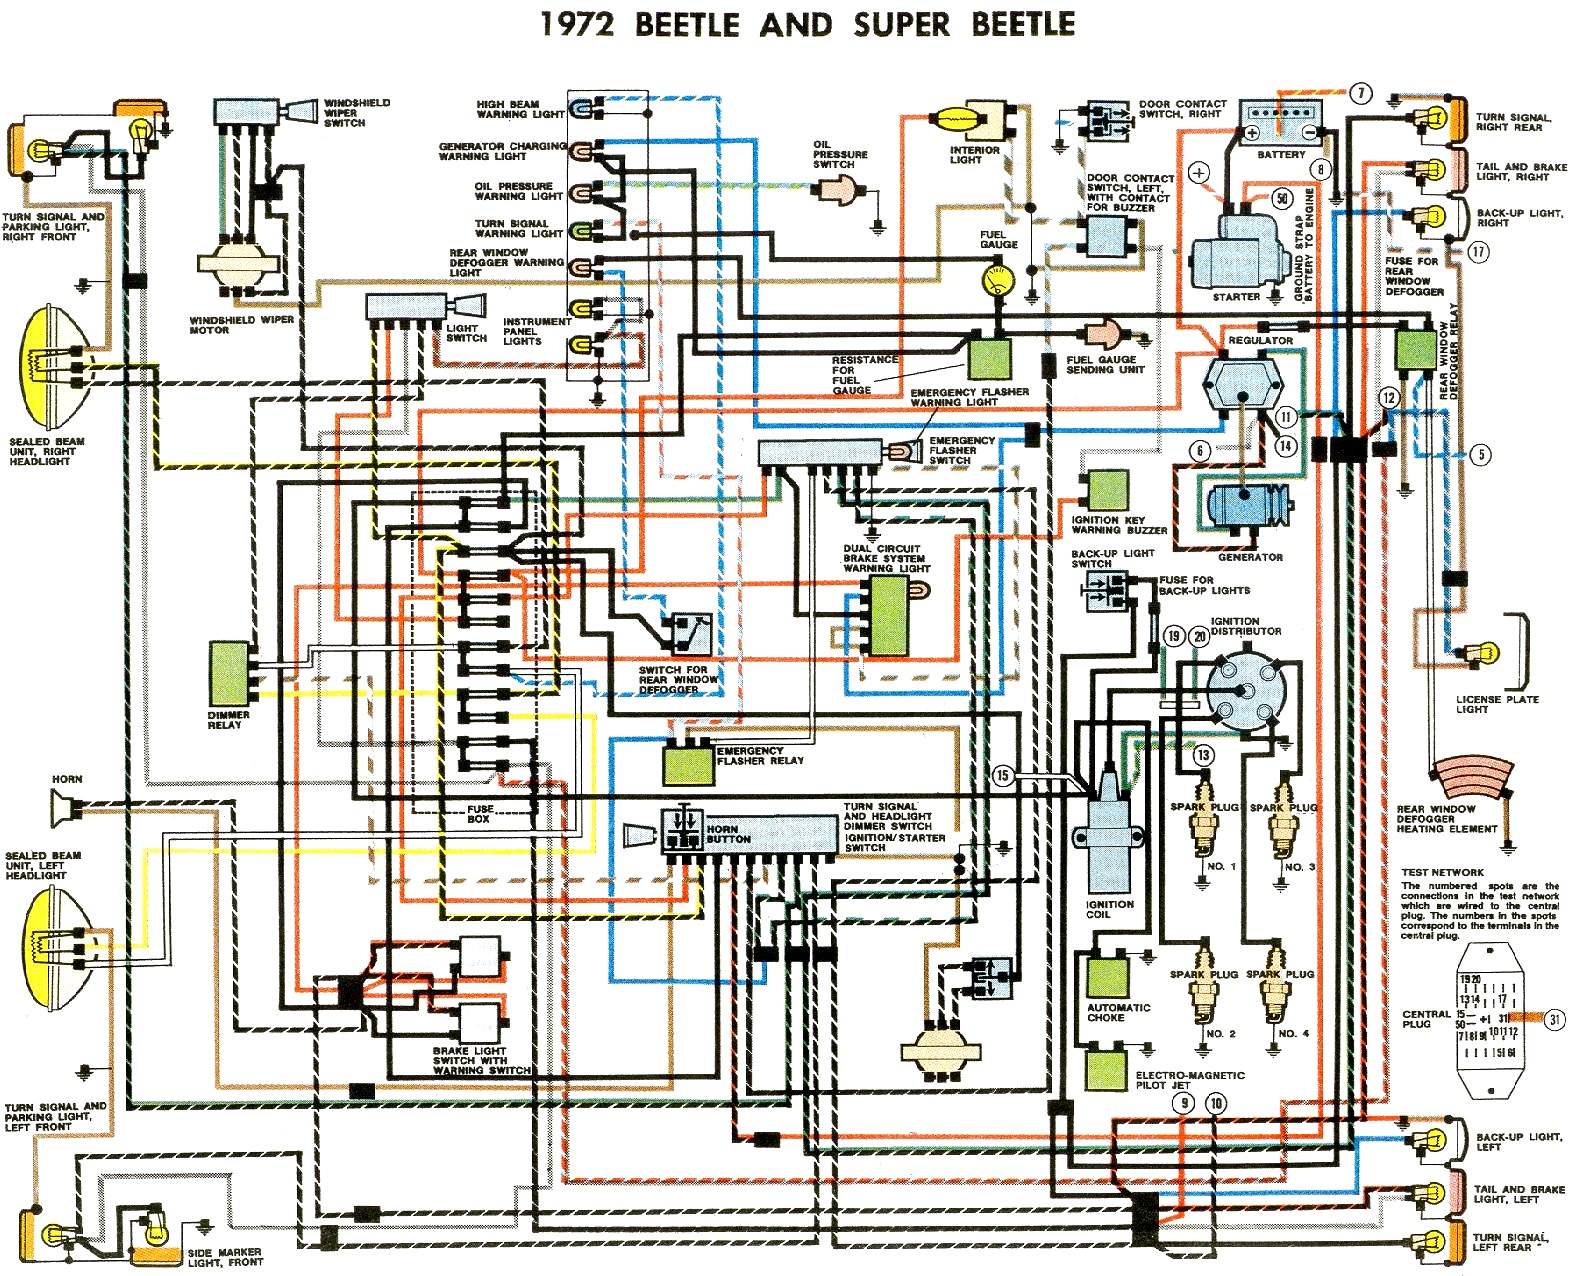 Miraculous 1974 Vw Engine Diagram Diagram Data Schema Wiring 101 Mecadwellnesstrialsorg